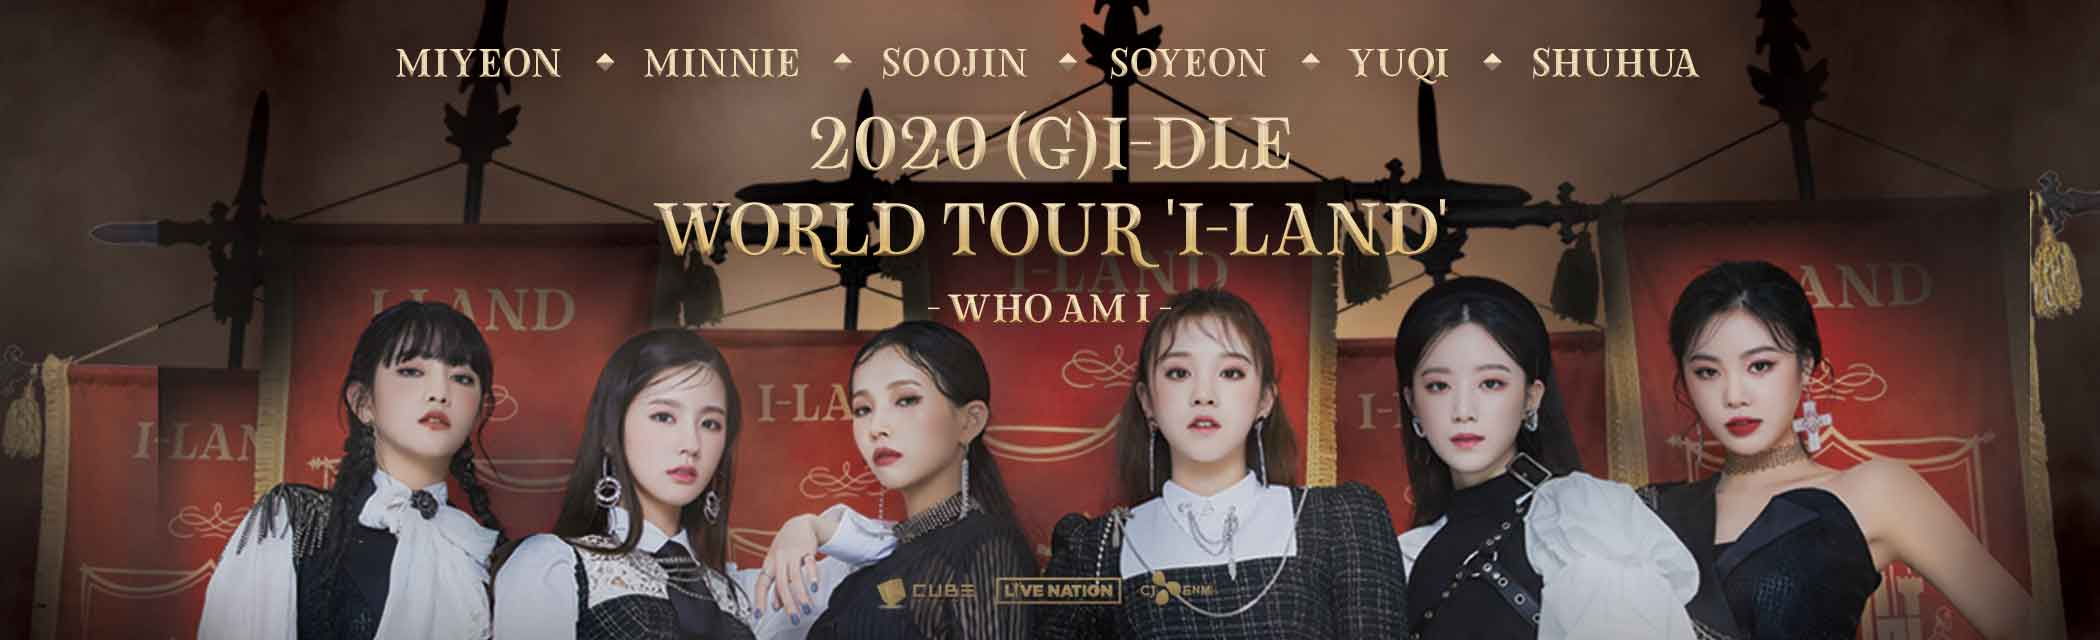 2020 WORLD TOUR 'I-LAND'